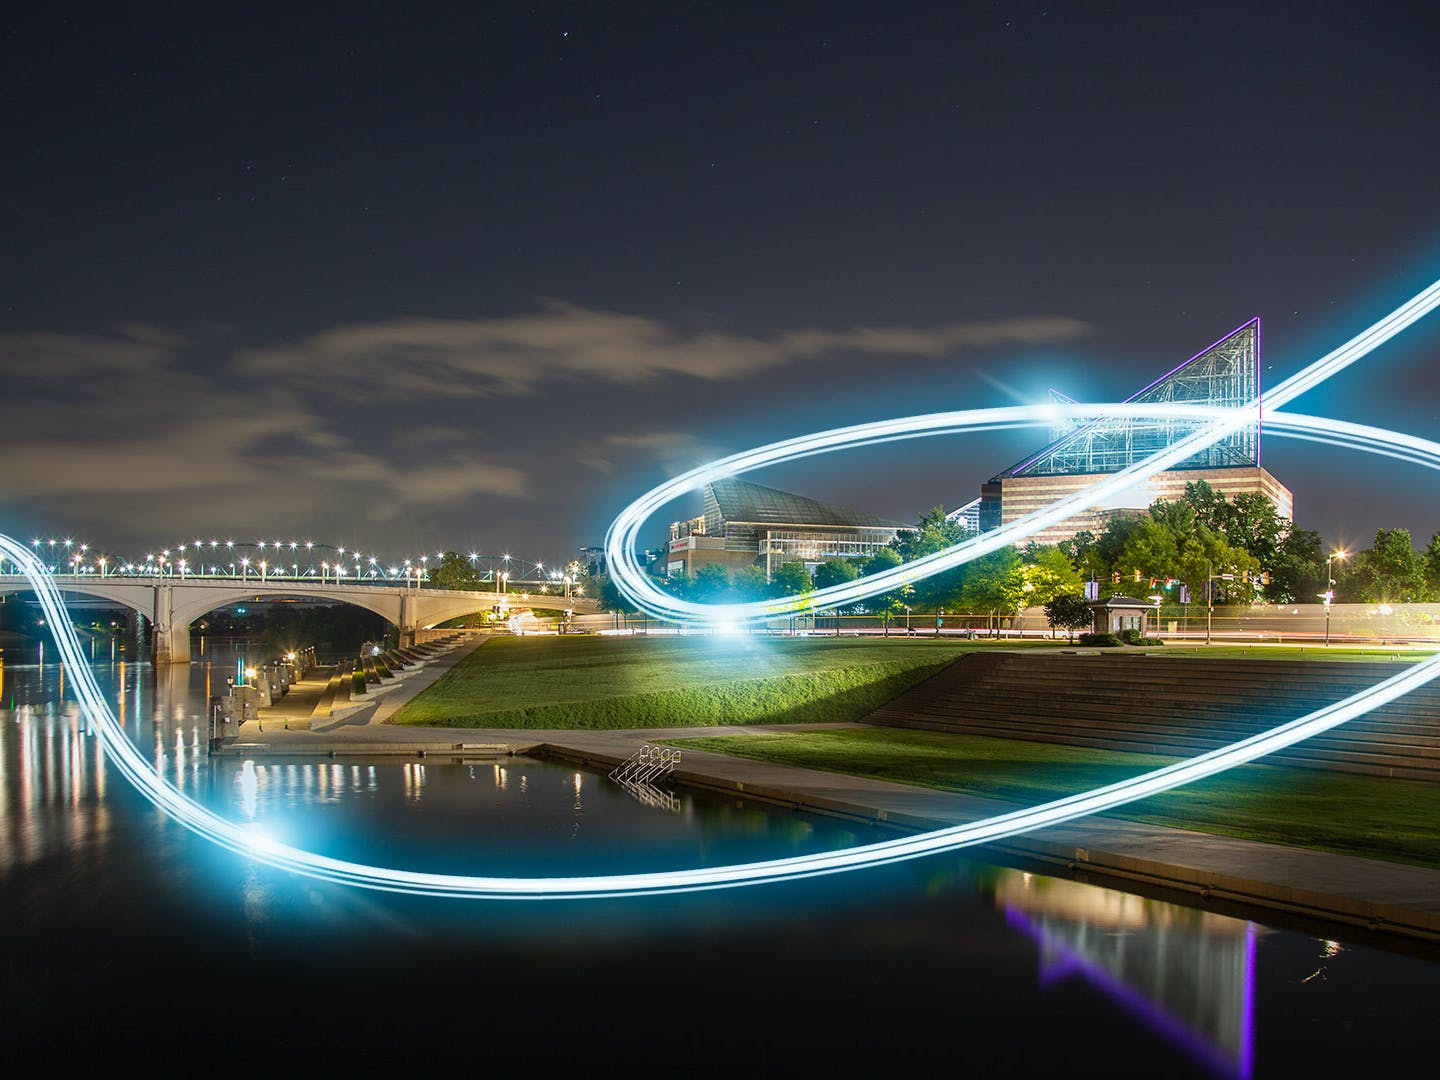 View of the Tennessee Aquarium at night from across the river with fiber light streaks in sky